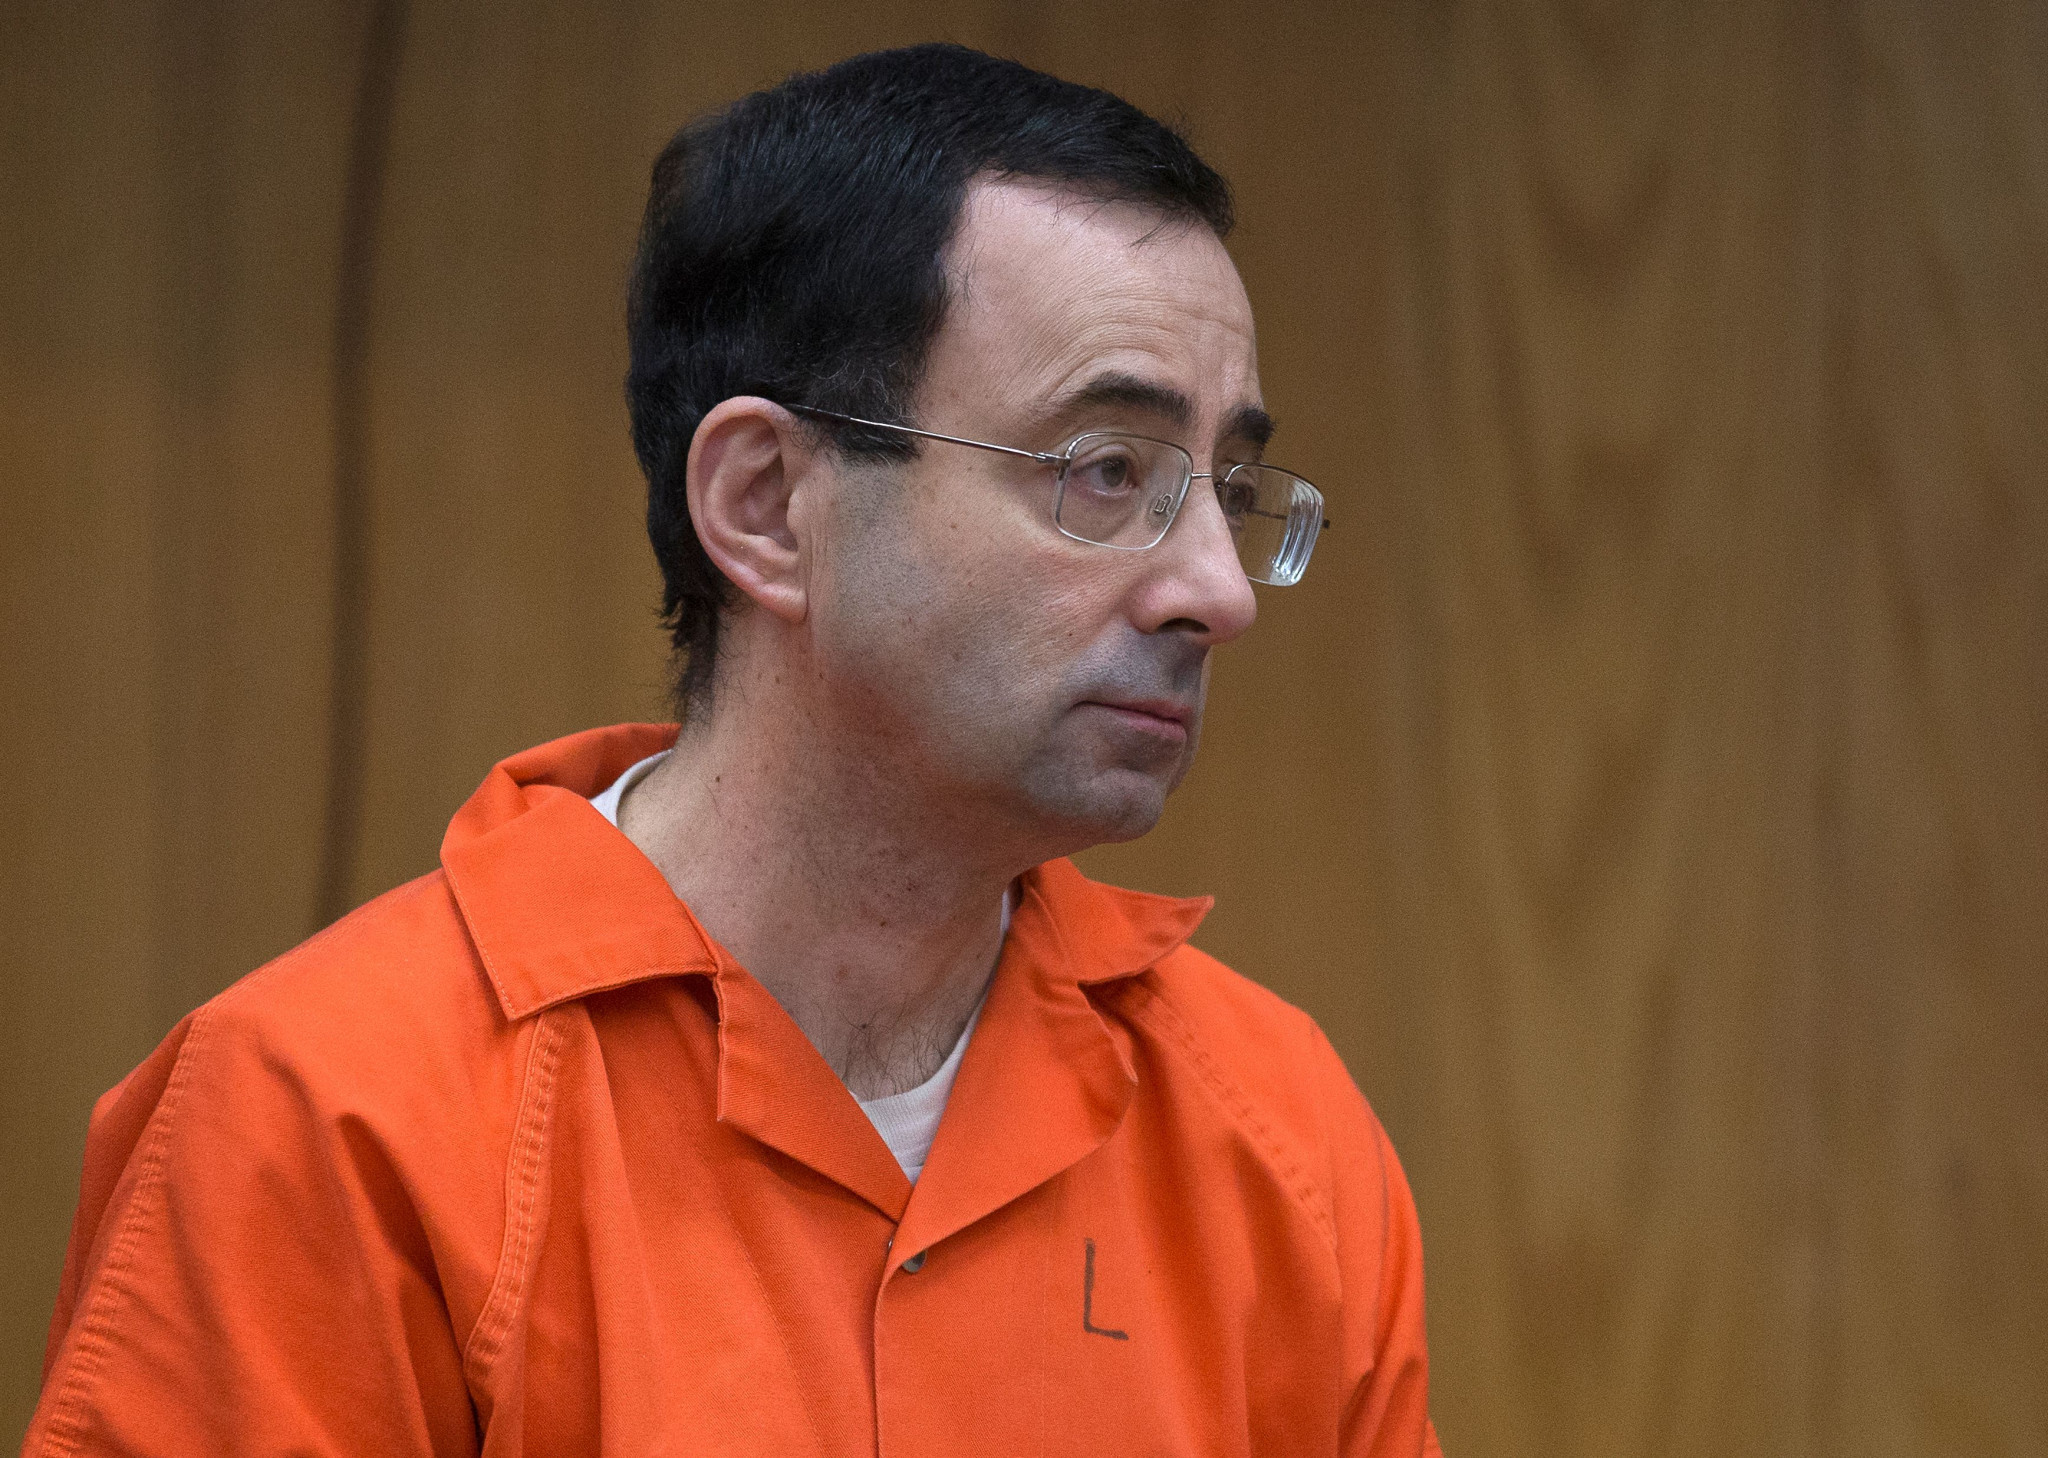 Hundreds of women has testified against former USA Gymnastics doctor Larry Nassar ©Getty Images